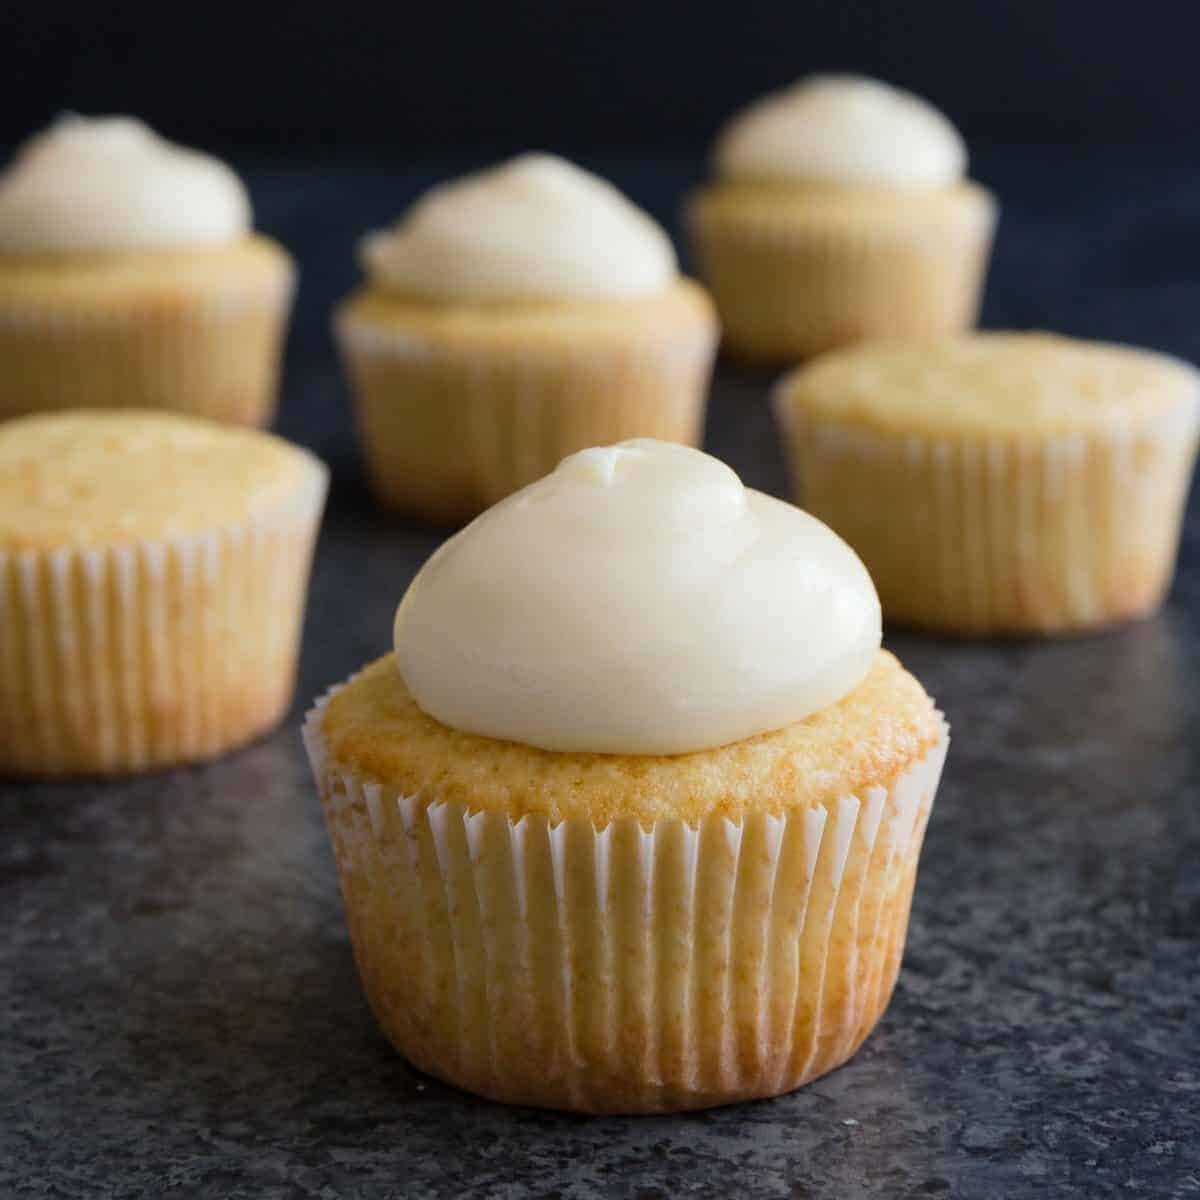 Lemon cream cheese frosting over cupcakes.